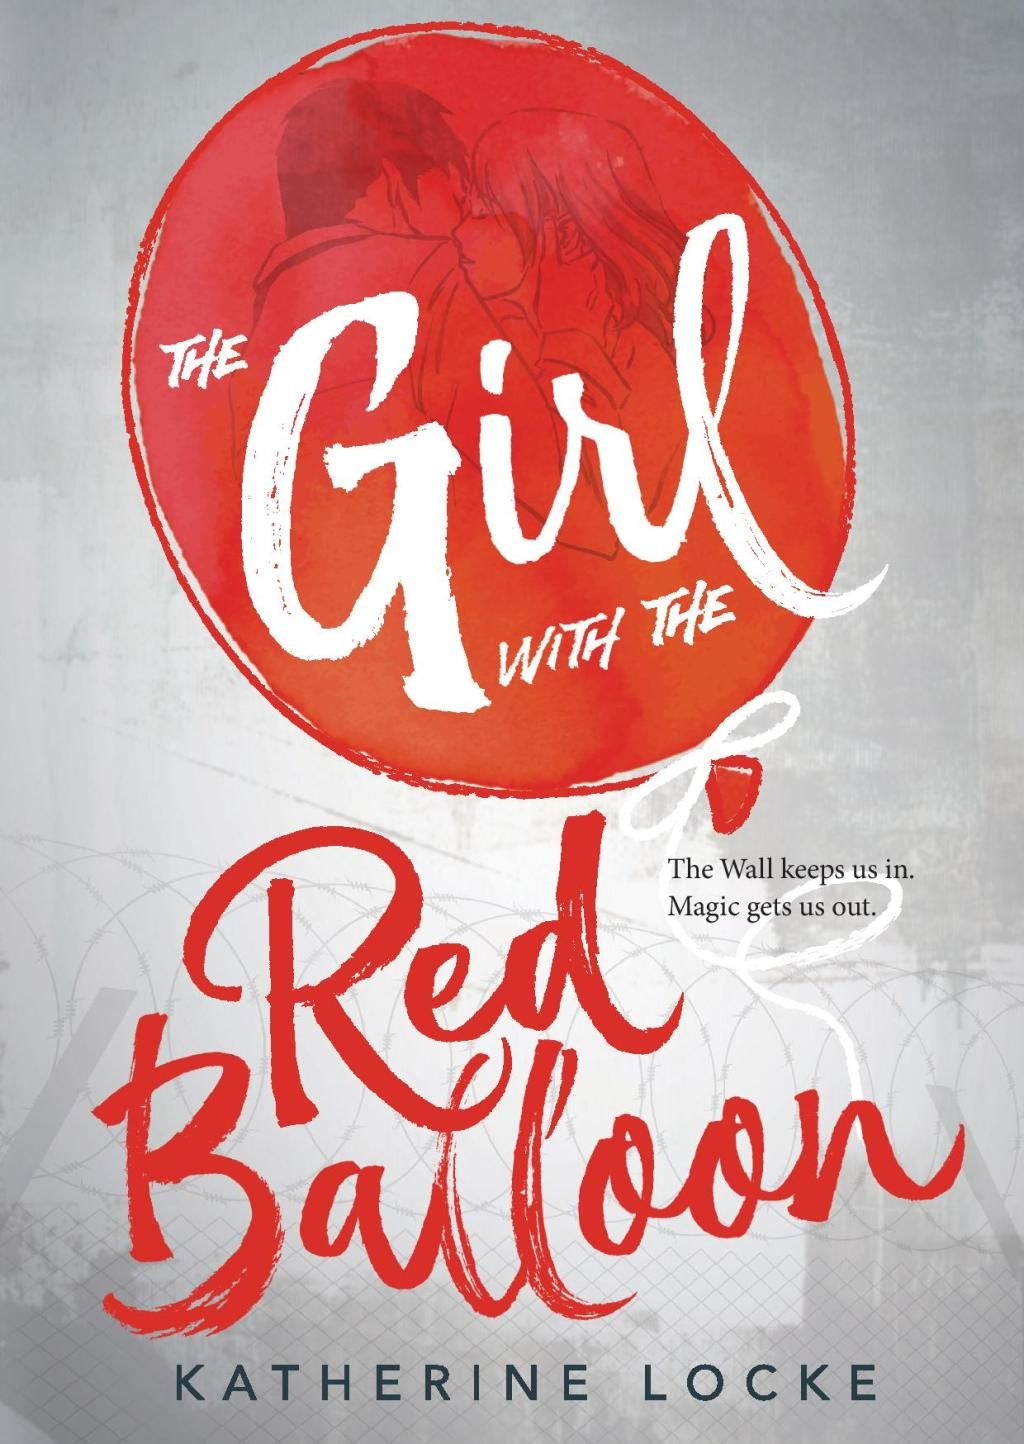 Katherine Locke: Five Things I Learned Writing The Girl With The Red Balloon